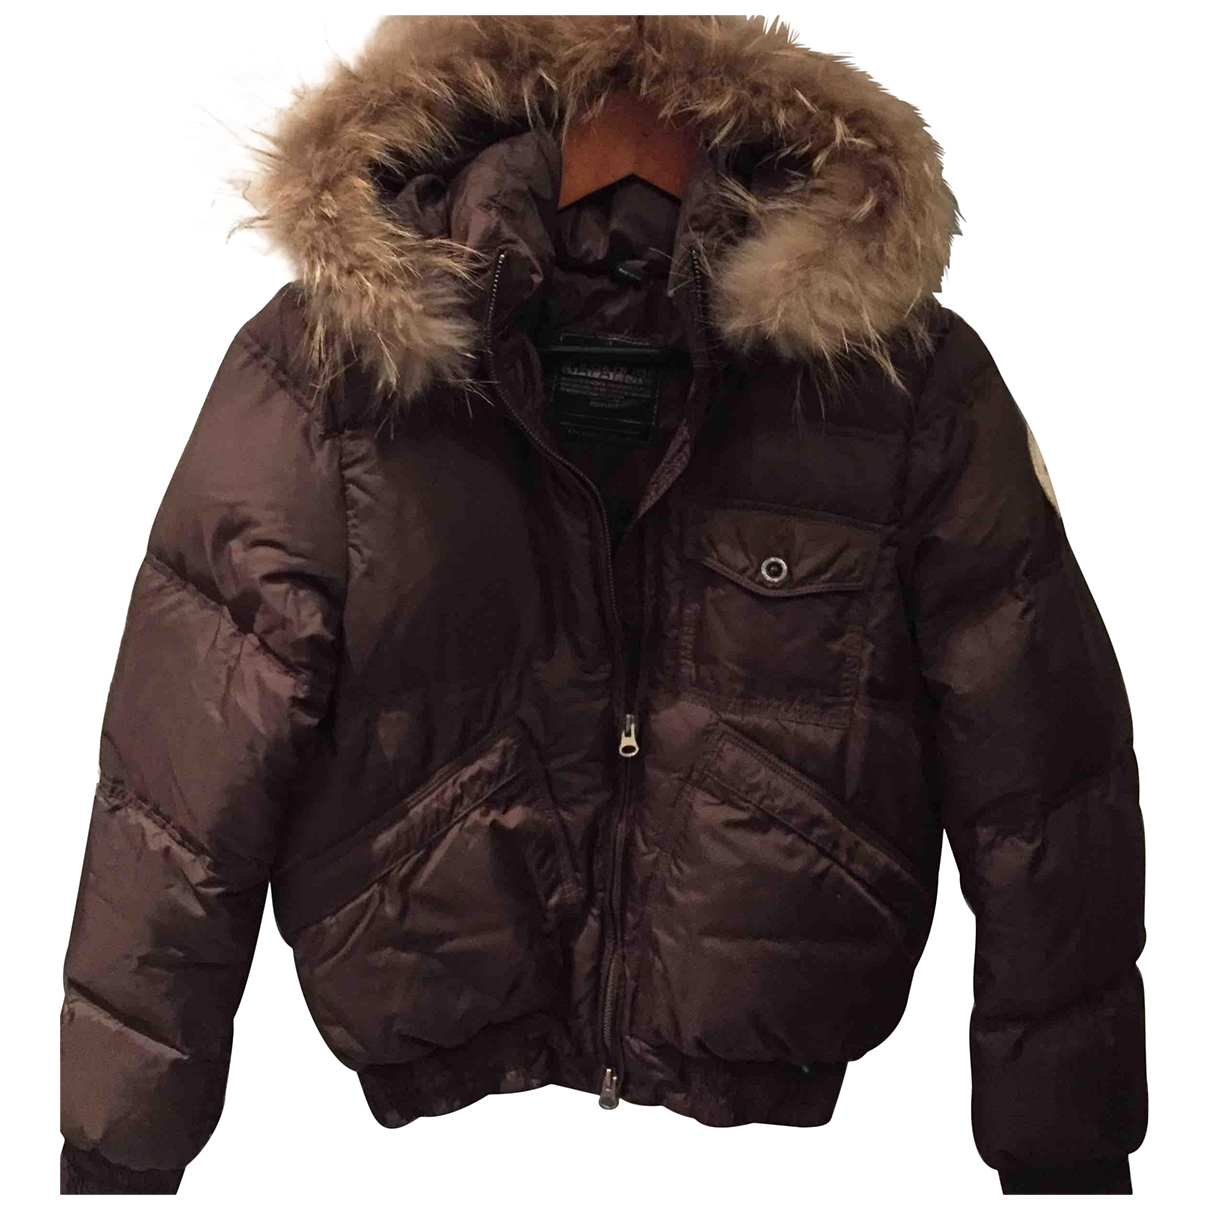 Napapijri \N Jacke in  Braun Synthetik